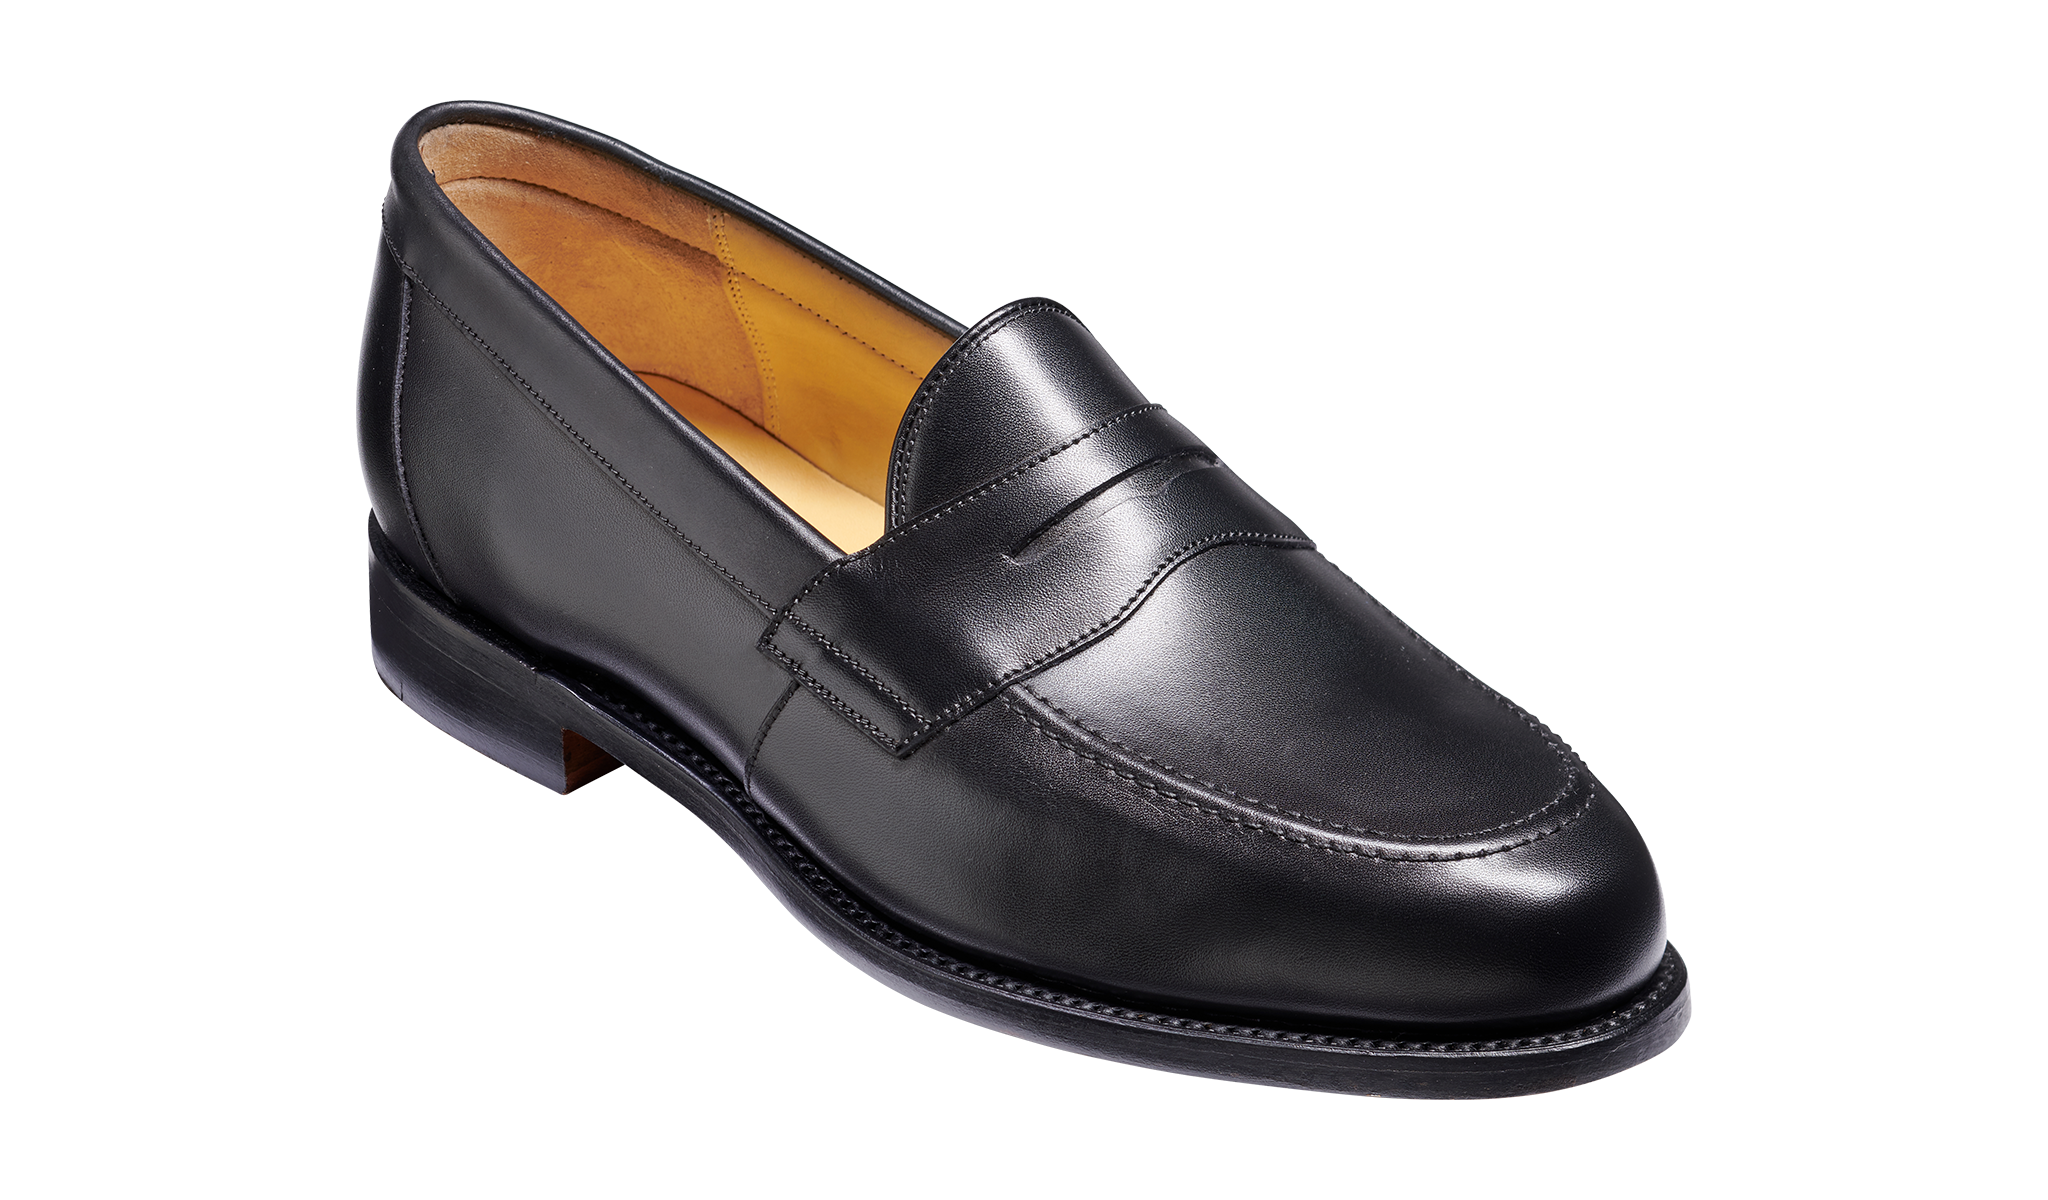 Portsmouth - A men's black loafers by Barker Shoes.